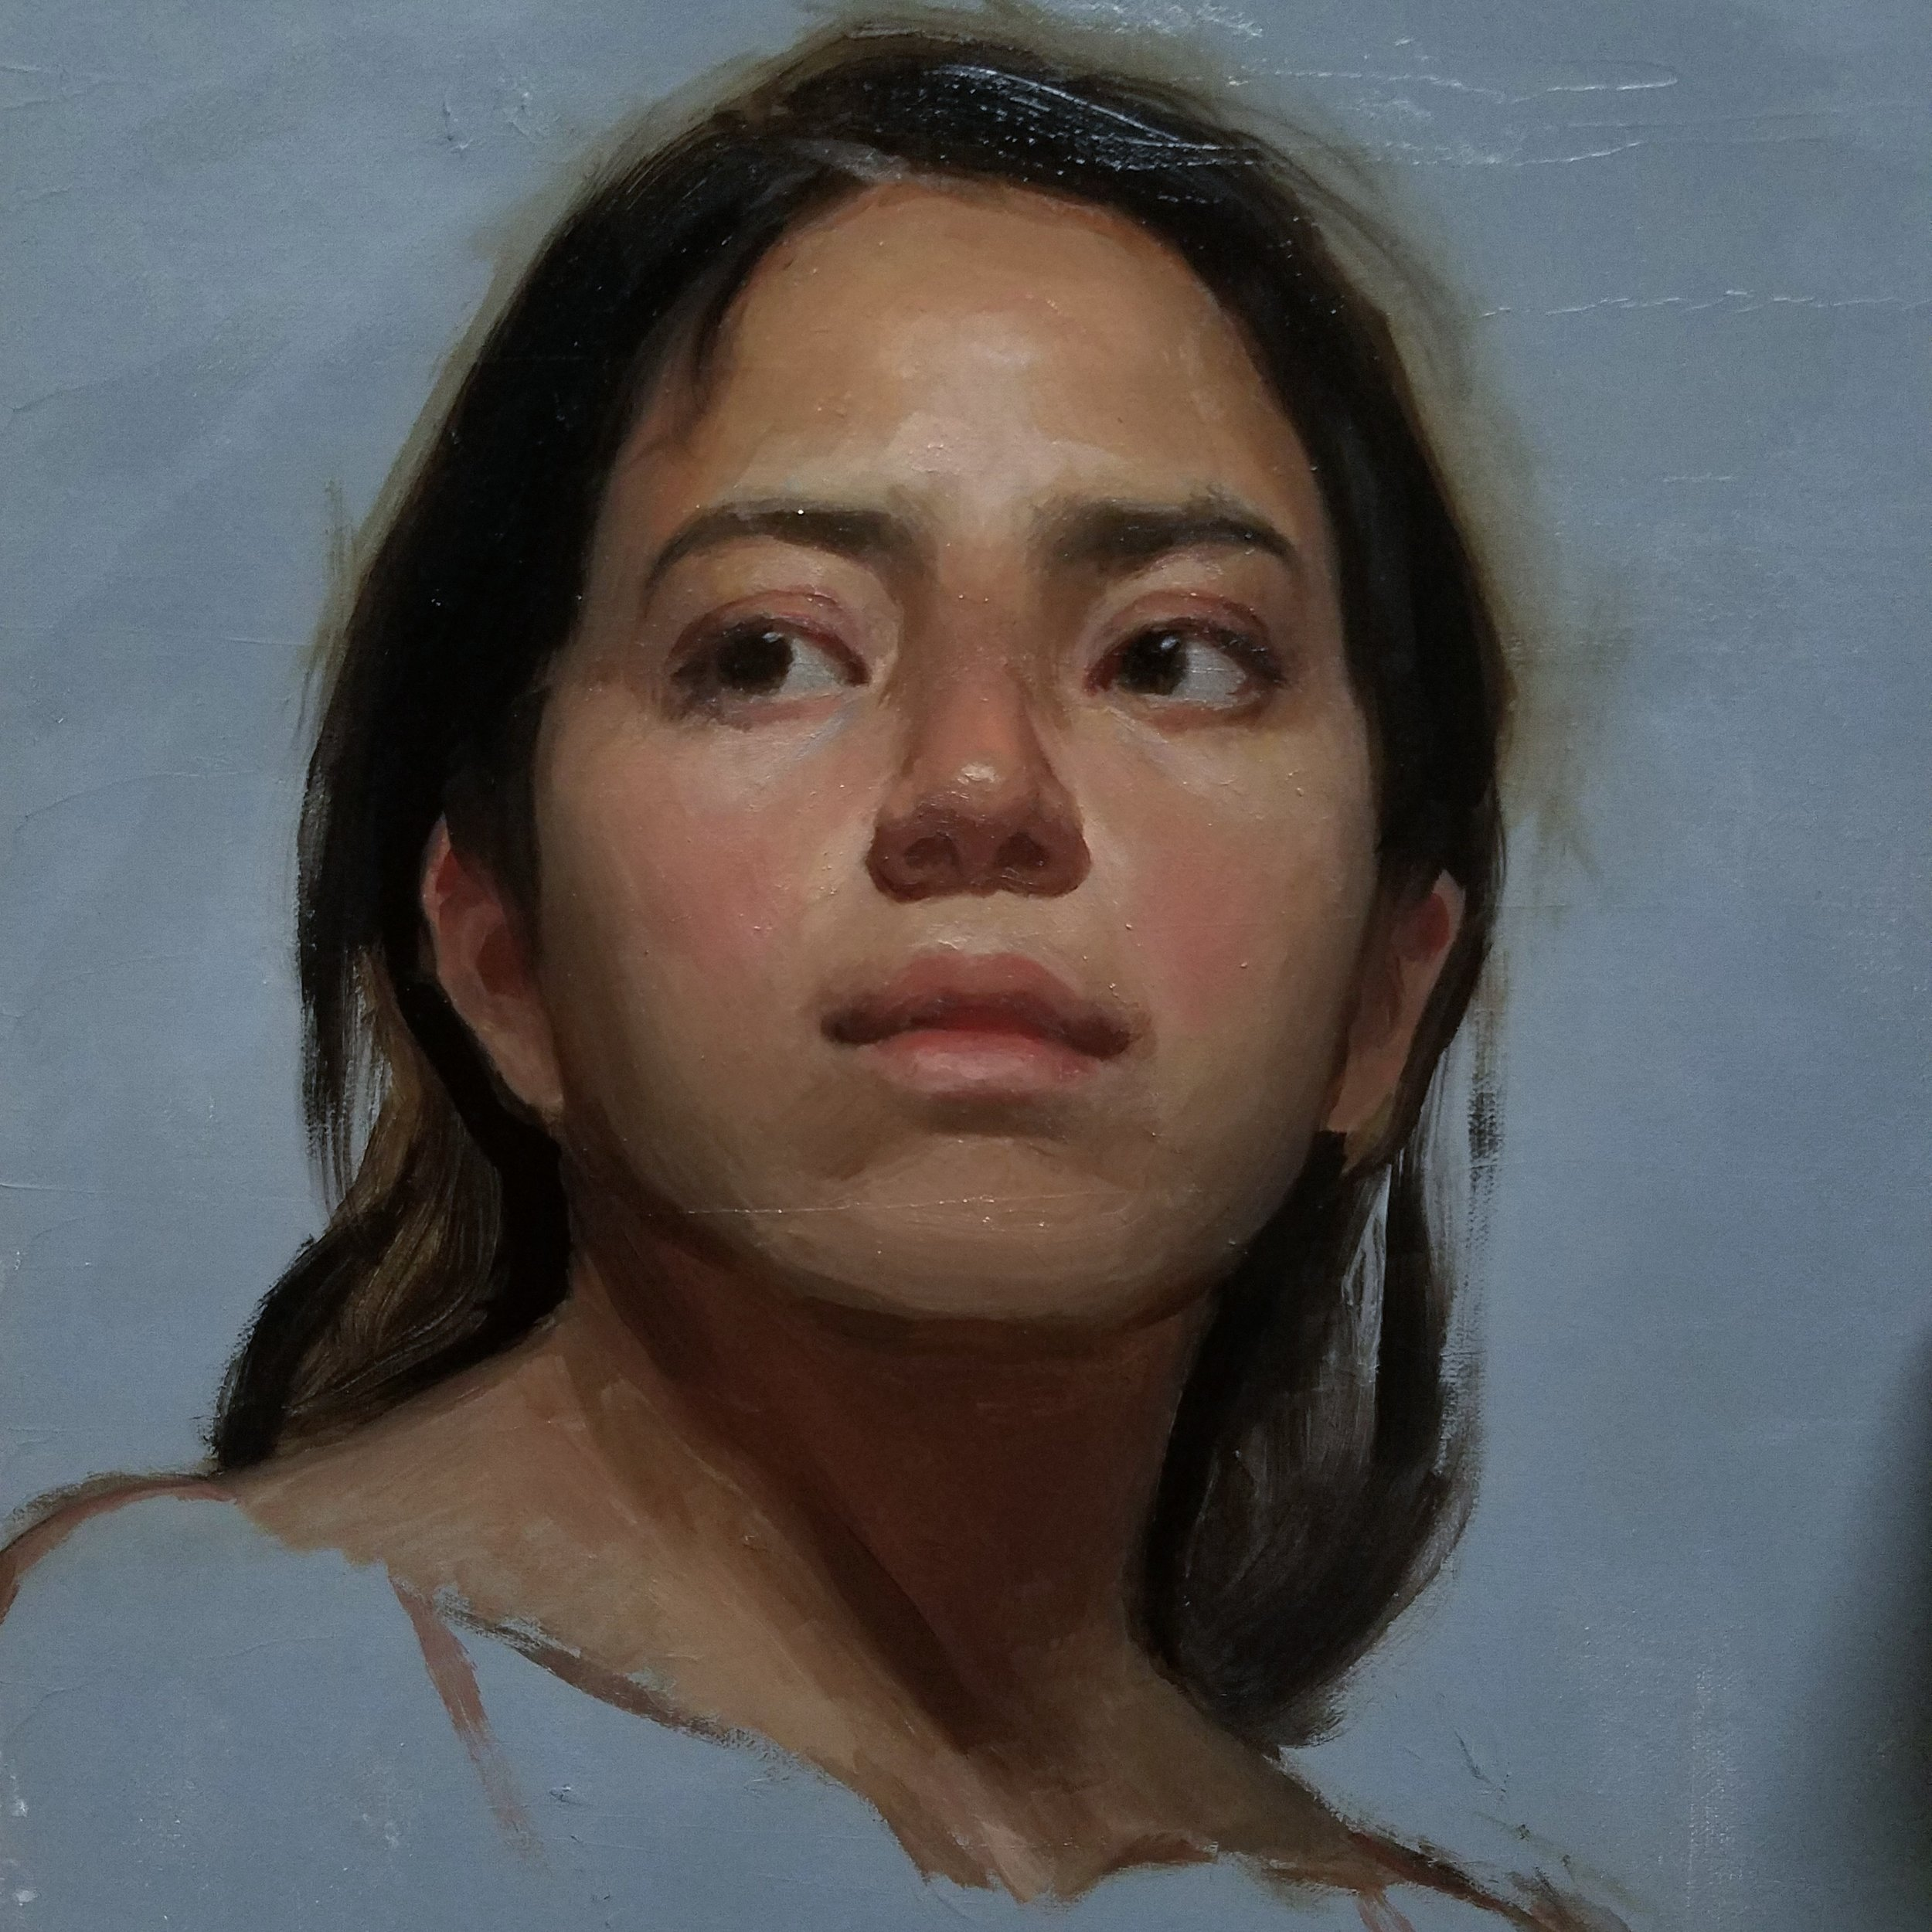 Andrea  by Sandra Sanchez, 2018, oil on linen, 11 x 14 in, $1,200